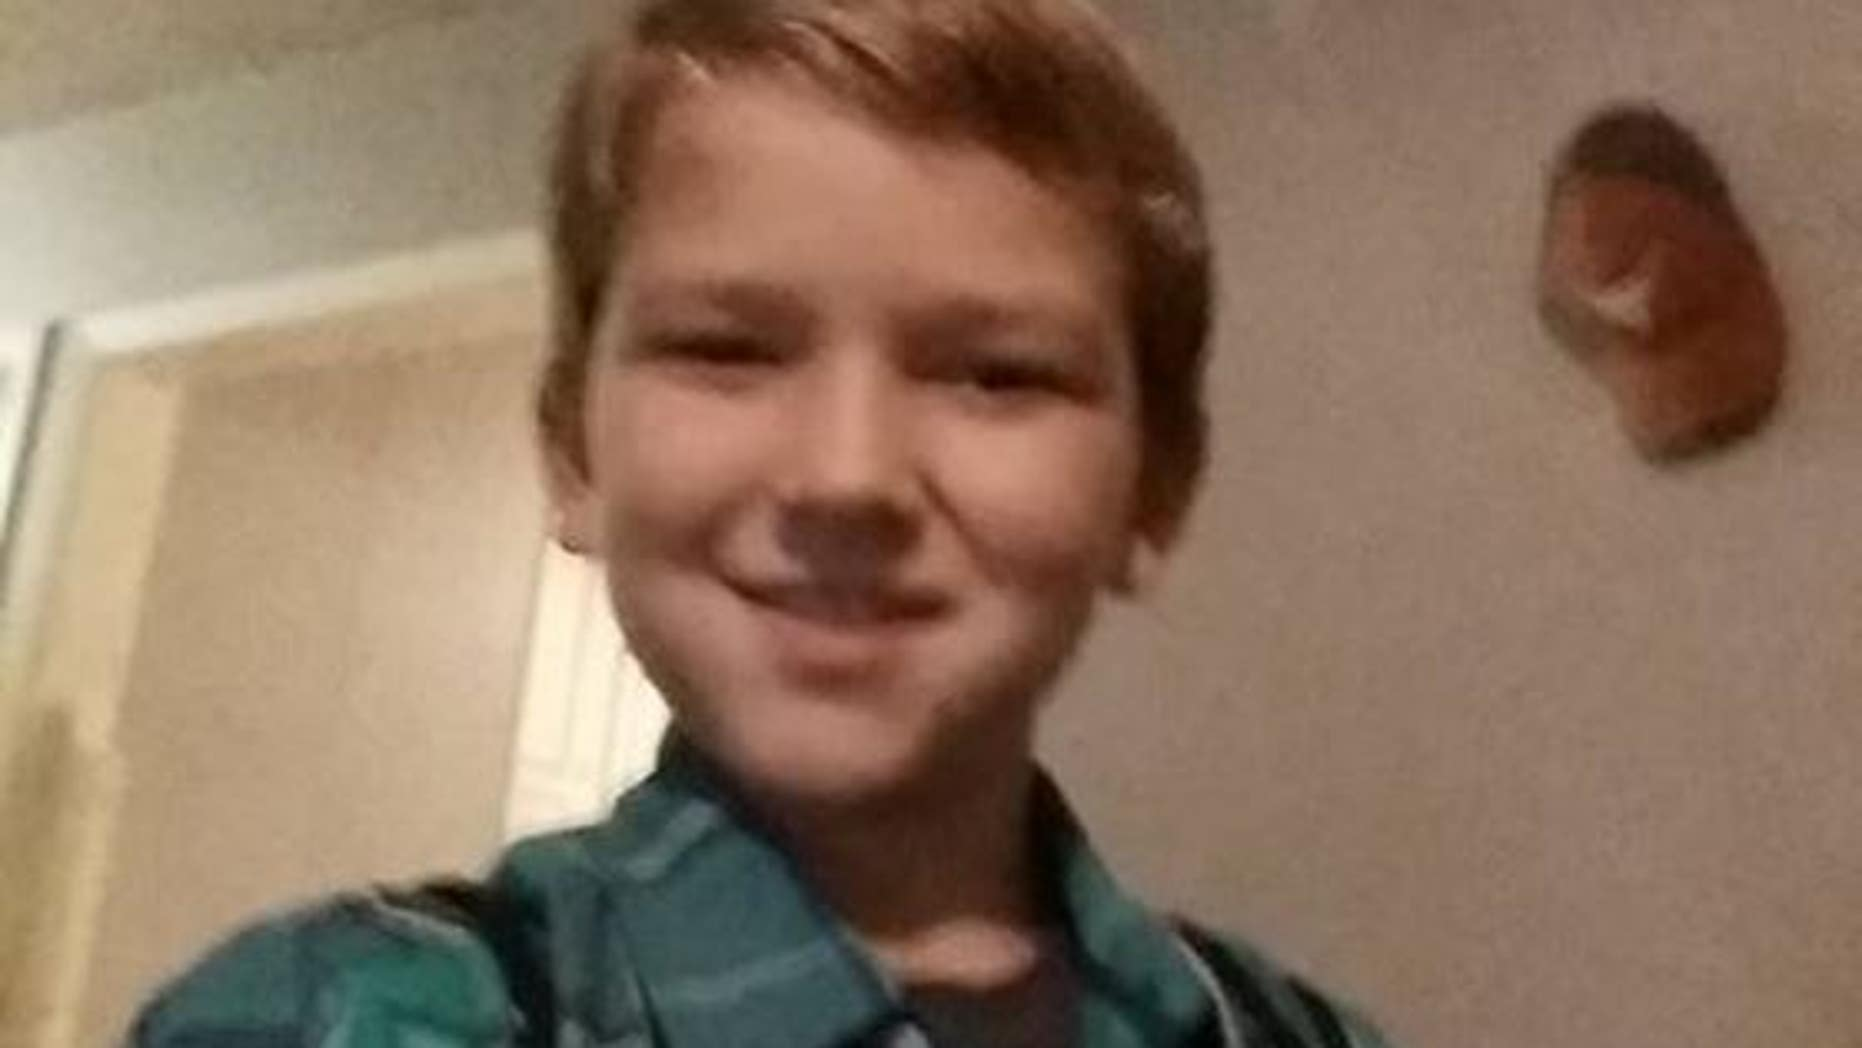 Kayden Culp, 10, was doused with gasoline and set on fire.